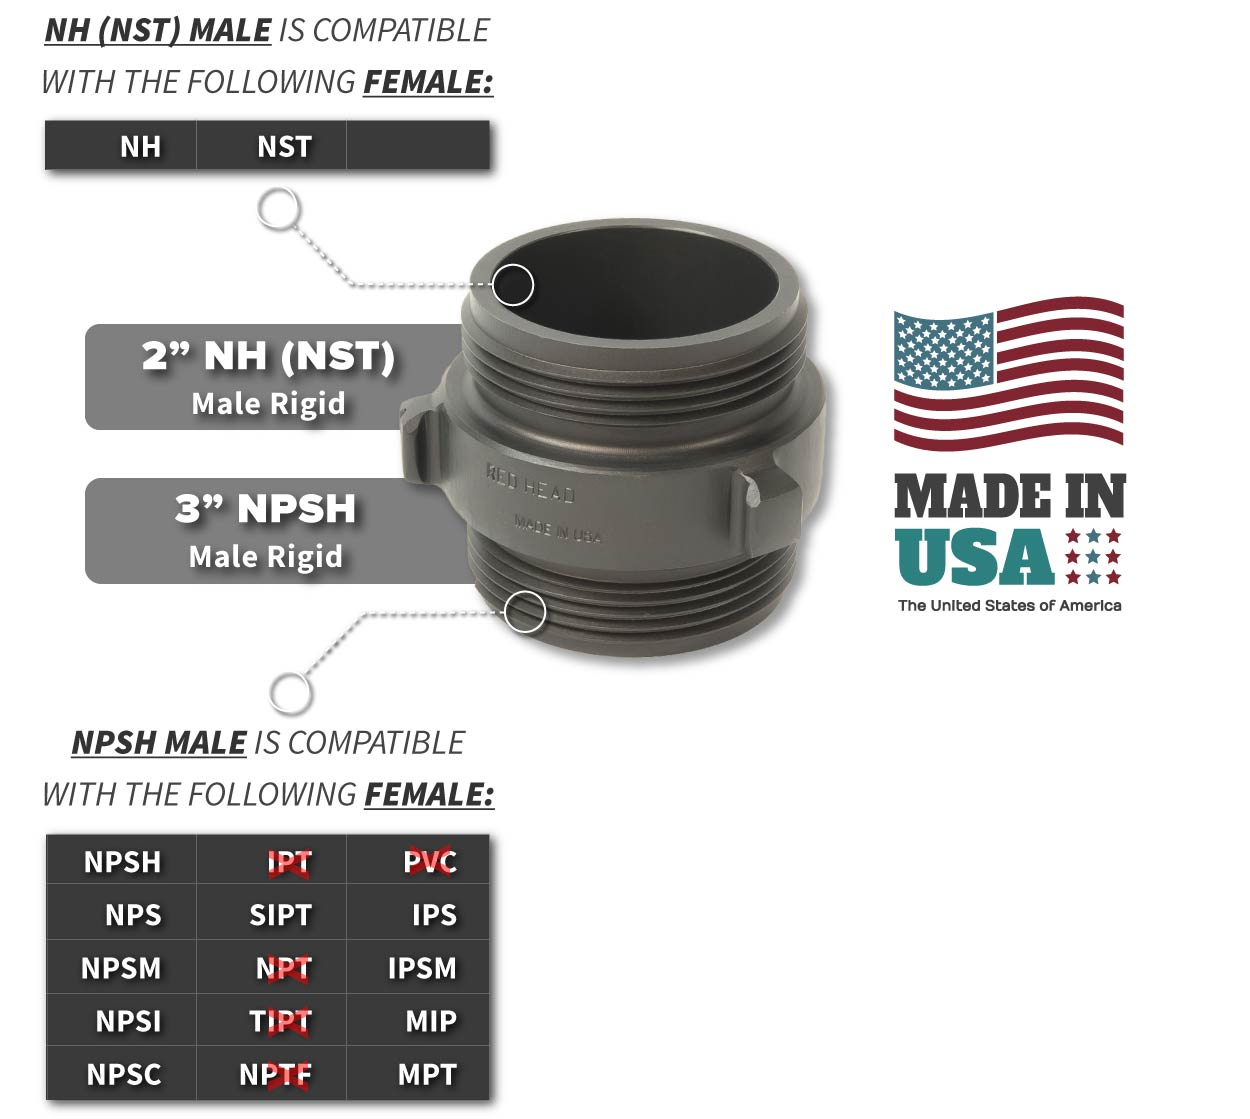 2 Inch NH-NST Male x 3 Inch NPSH Male Compatibility Thread Chart